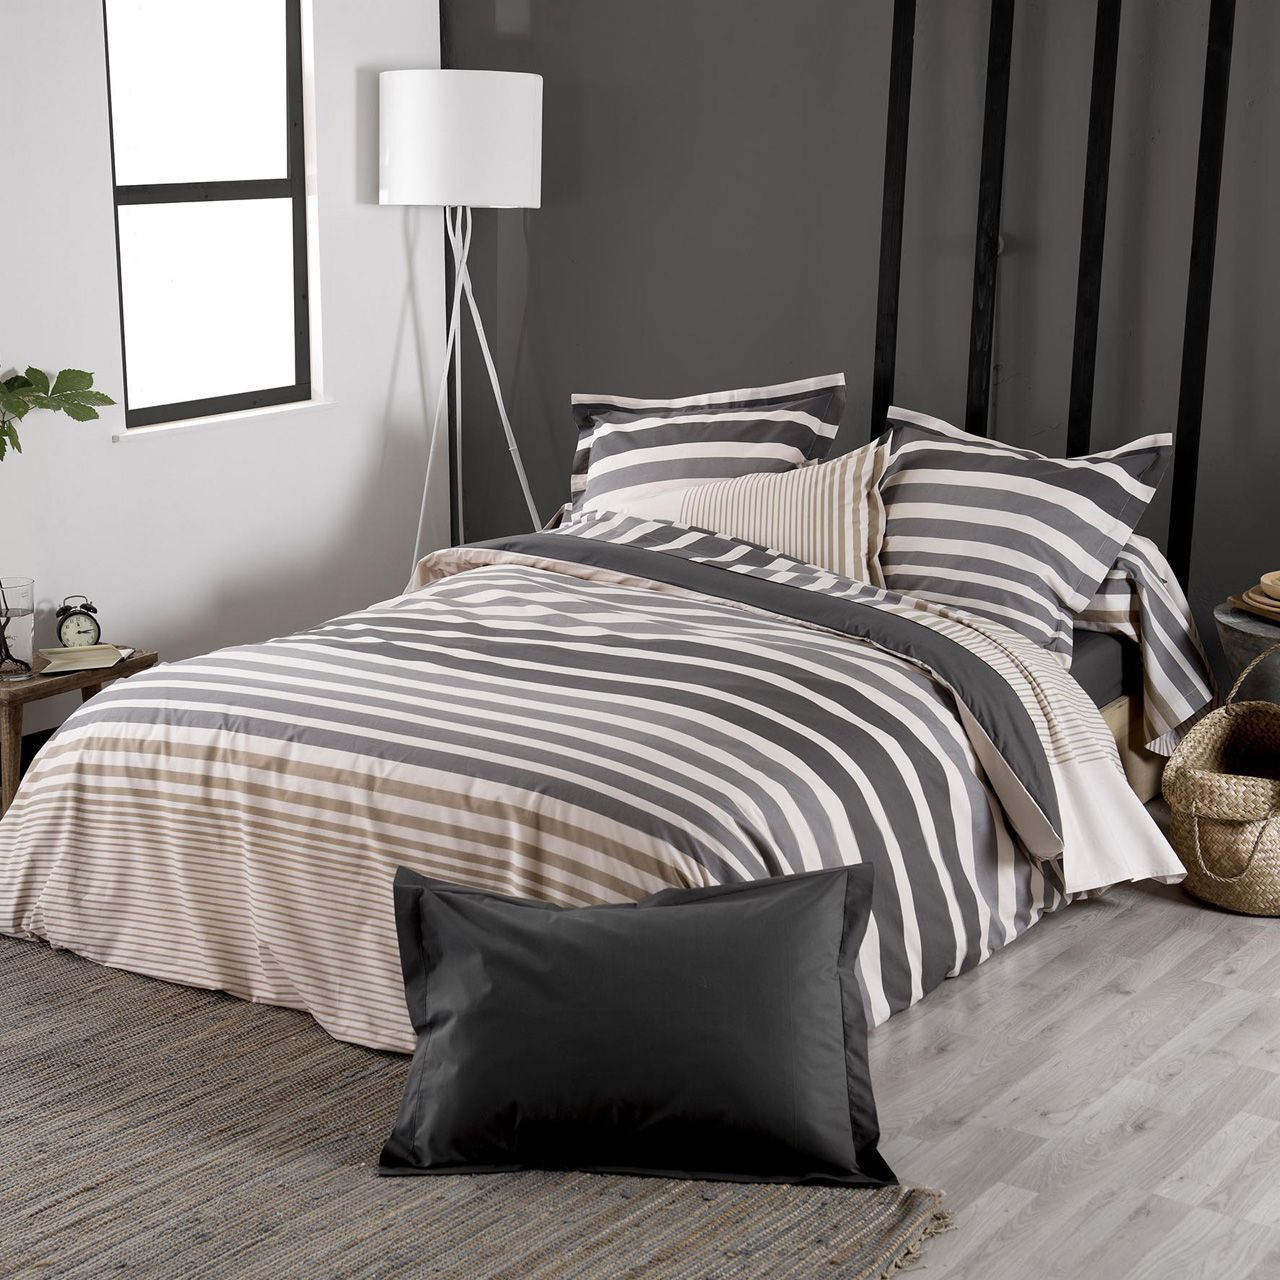 housse de couette stripe rayures ficelle percale 140x200 tradilinge. Black Bedroom Furniture Sets. Home Design Ideas